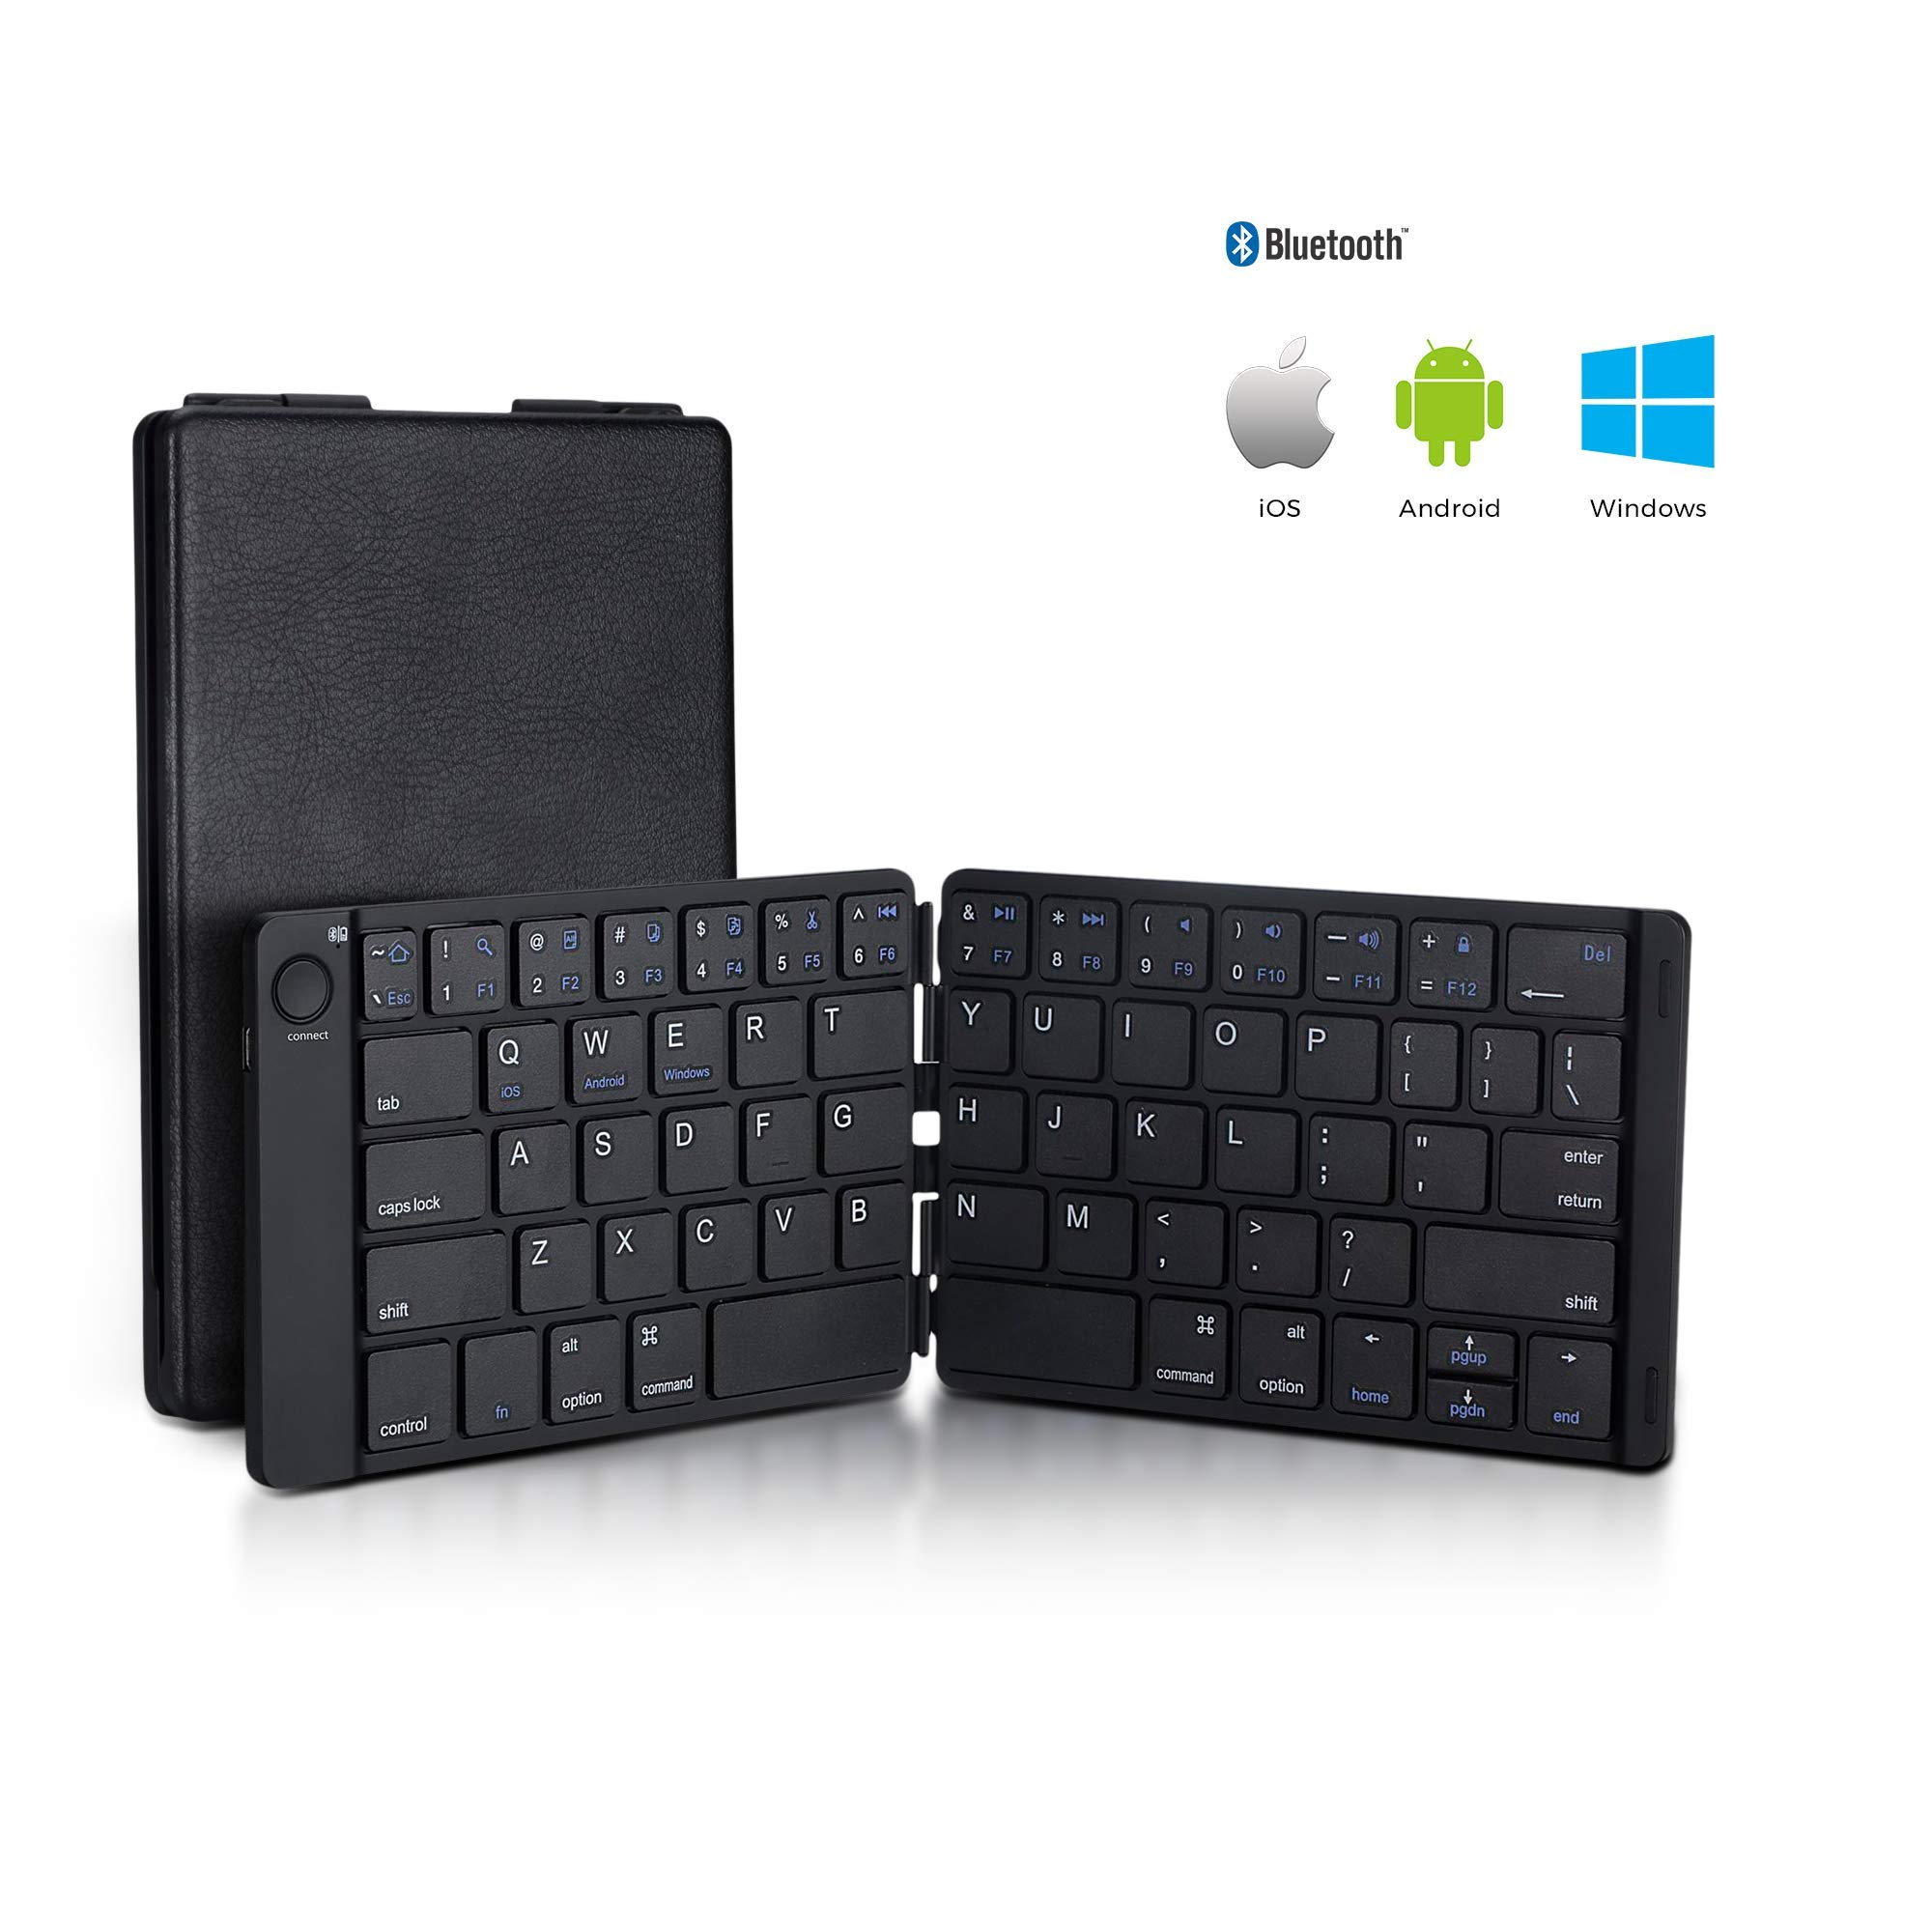 Foldable Bluetooth Keyboard Trendy Wag Portable Wireless Folding Rechargeable Pocket Size Full Size Ultra Slim for Windows Mac OS Android iOS PC iPad Samsung Tablet Smartphones